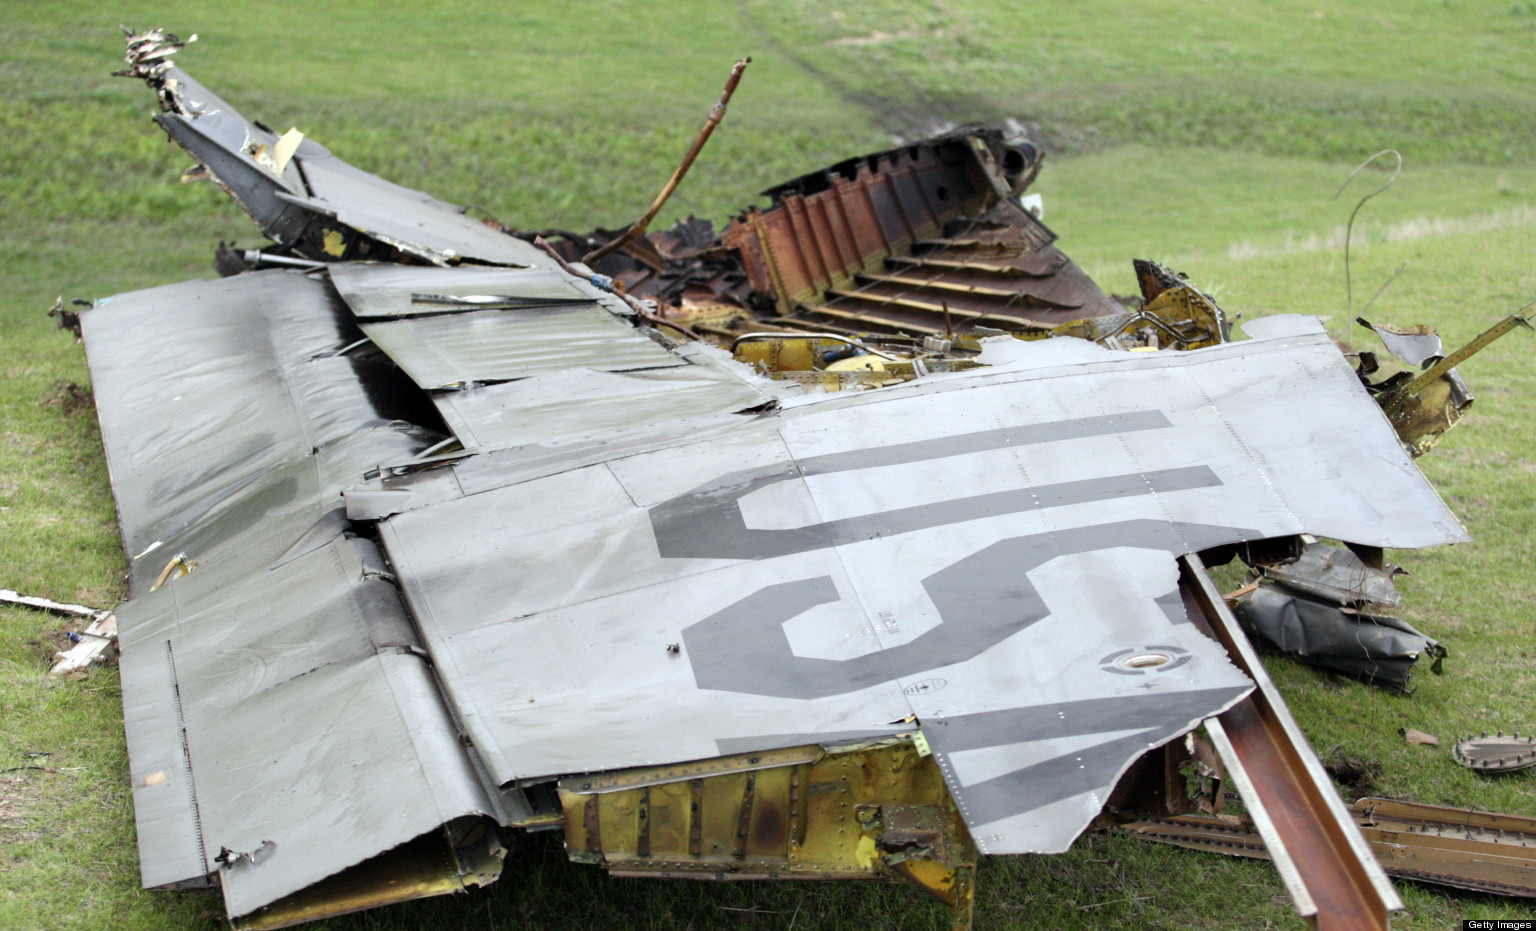 Plane Crash Bodies Photos O-kyrgyzstan-plane-crash- ...